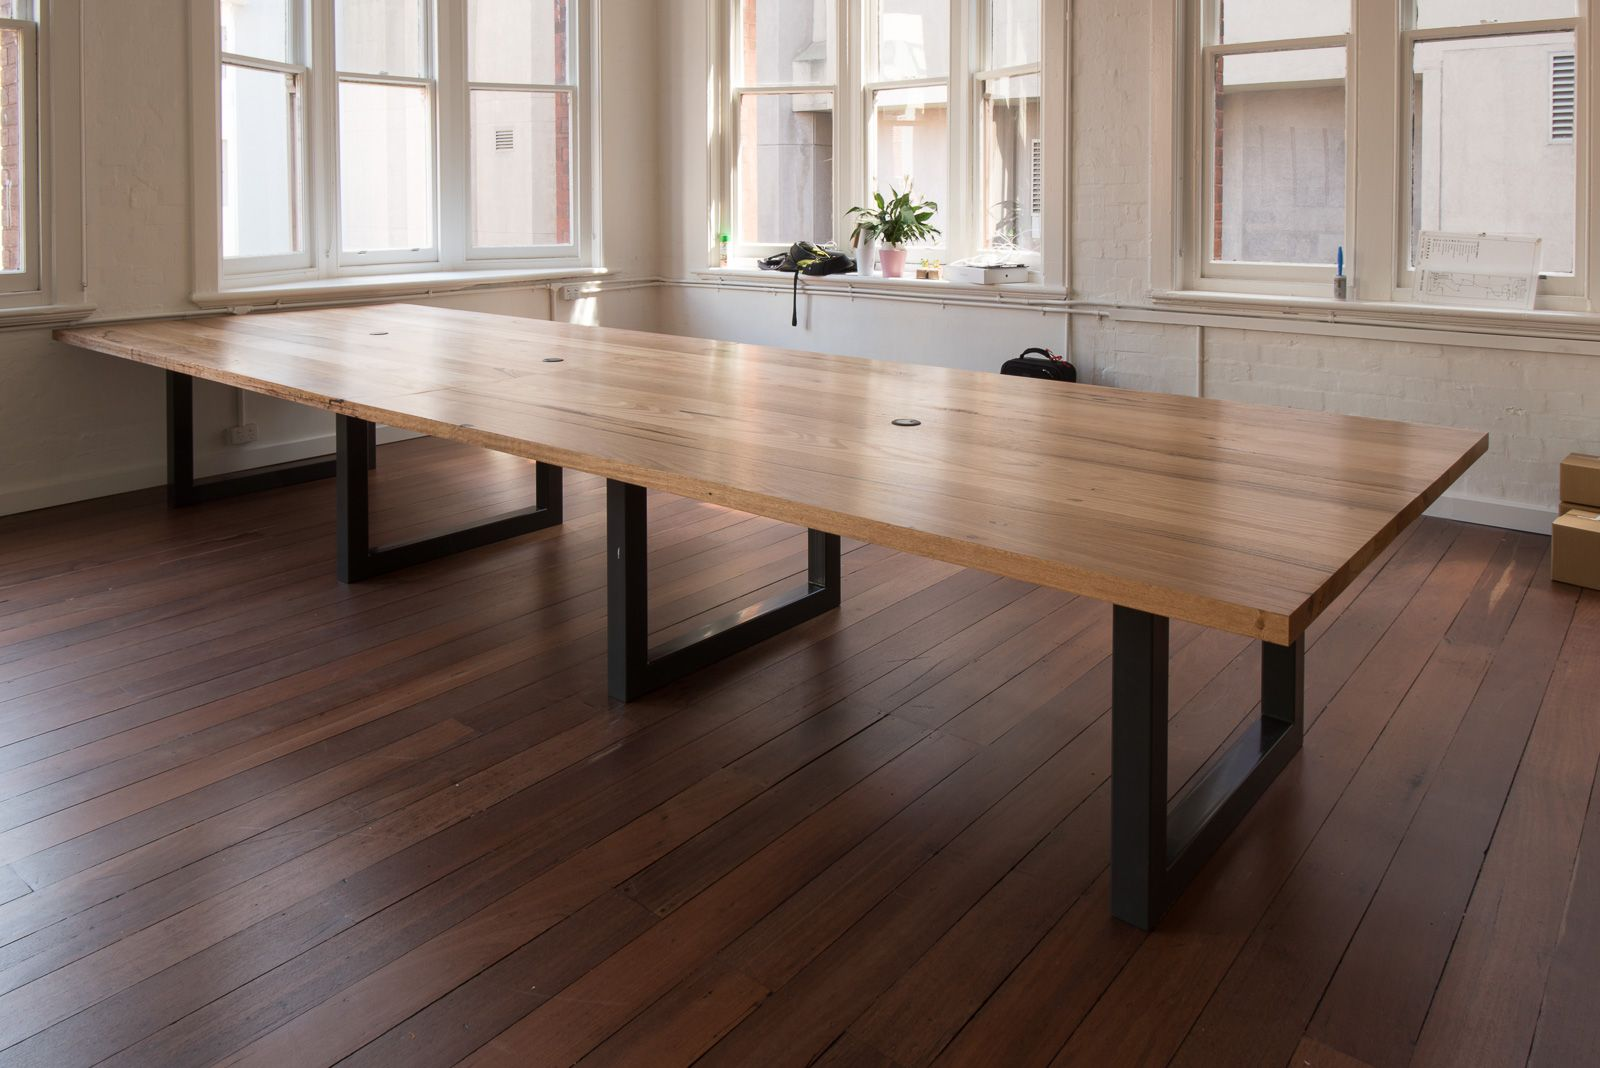 Recycled Mixed Victorian Hardwood Blend Communal Work Tables With - Communal work table